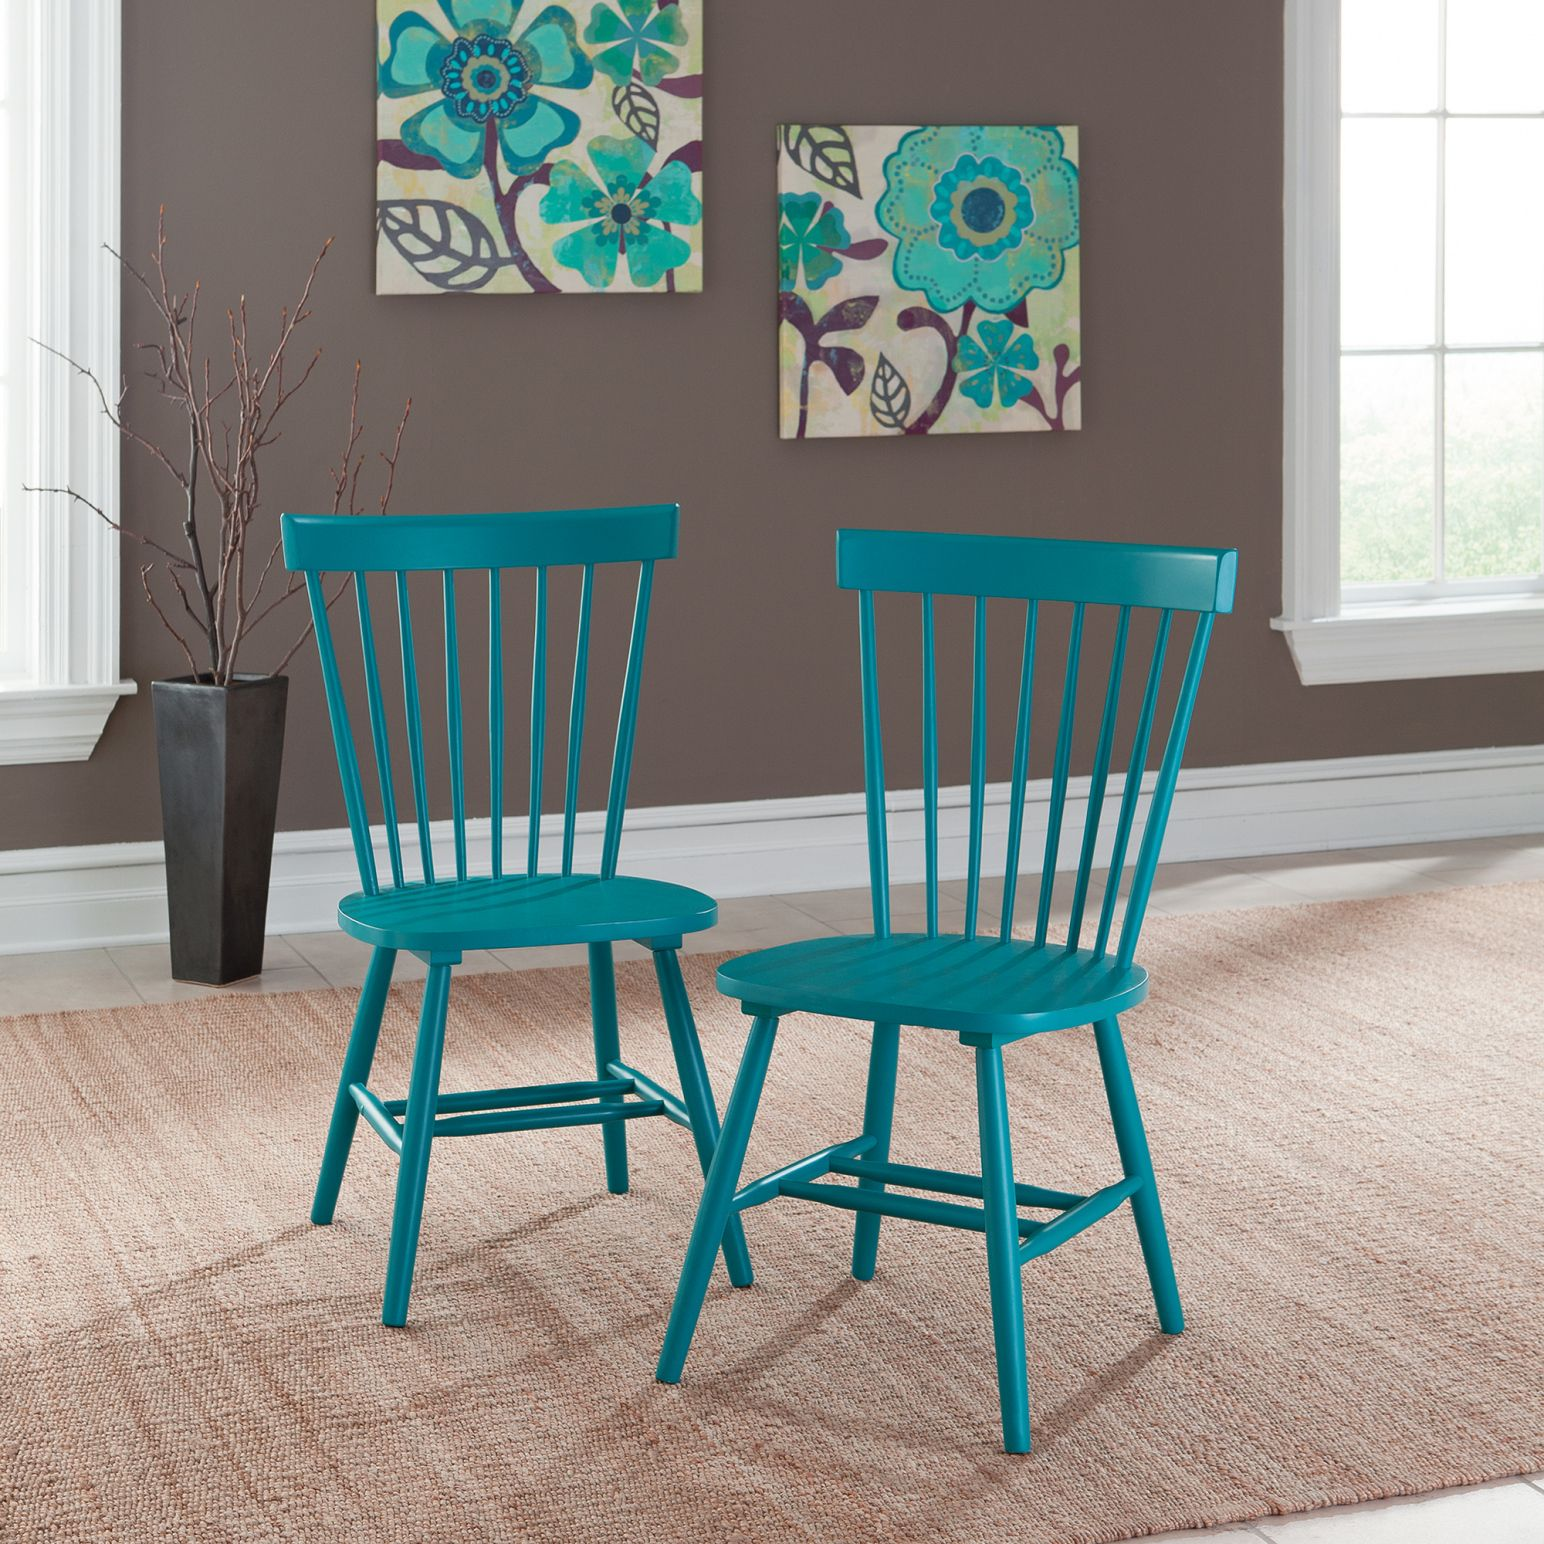 100+ Teal Kitchen Chairs - Kitchen Pantry Storage Ideas Check more ...